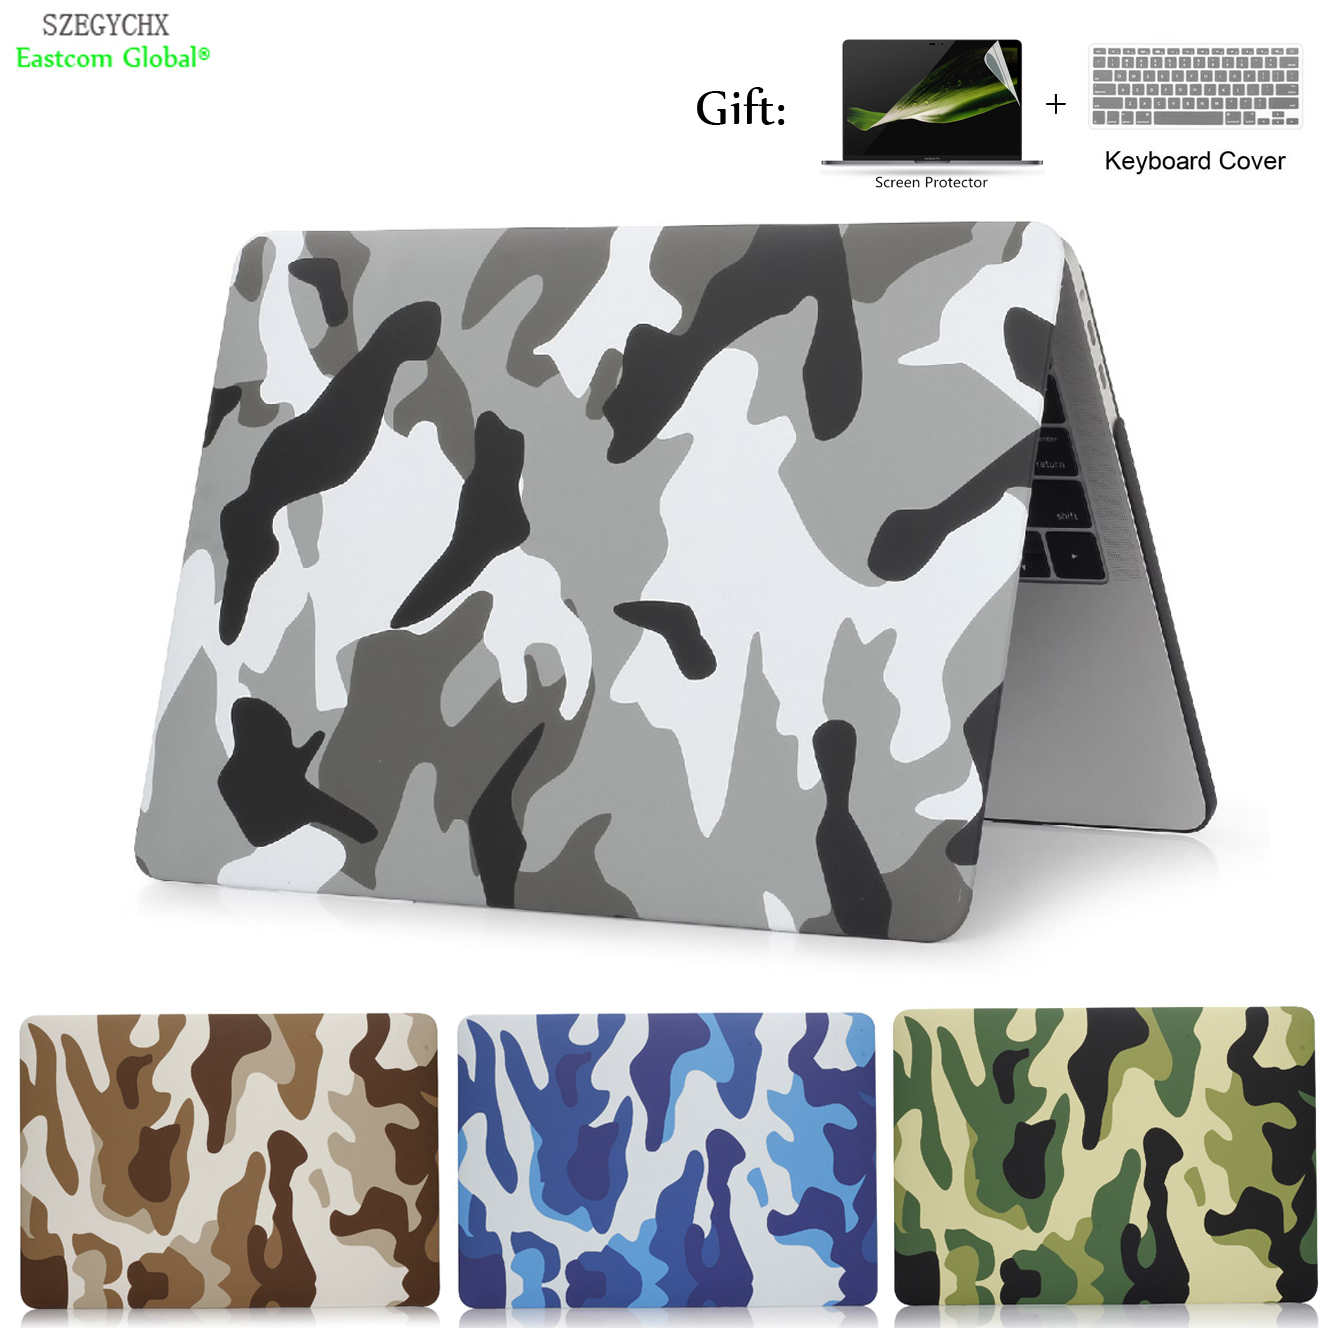 Camouflage shell Laptop tok MacBook Air 13 11 Pro Retina 12 13,3 15 érintősáv Macbook New Air 13 A1932 2018 tokhoz